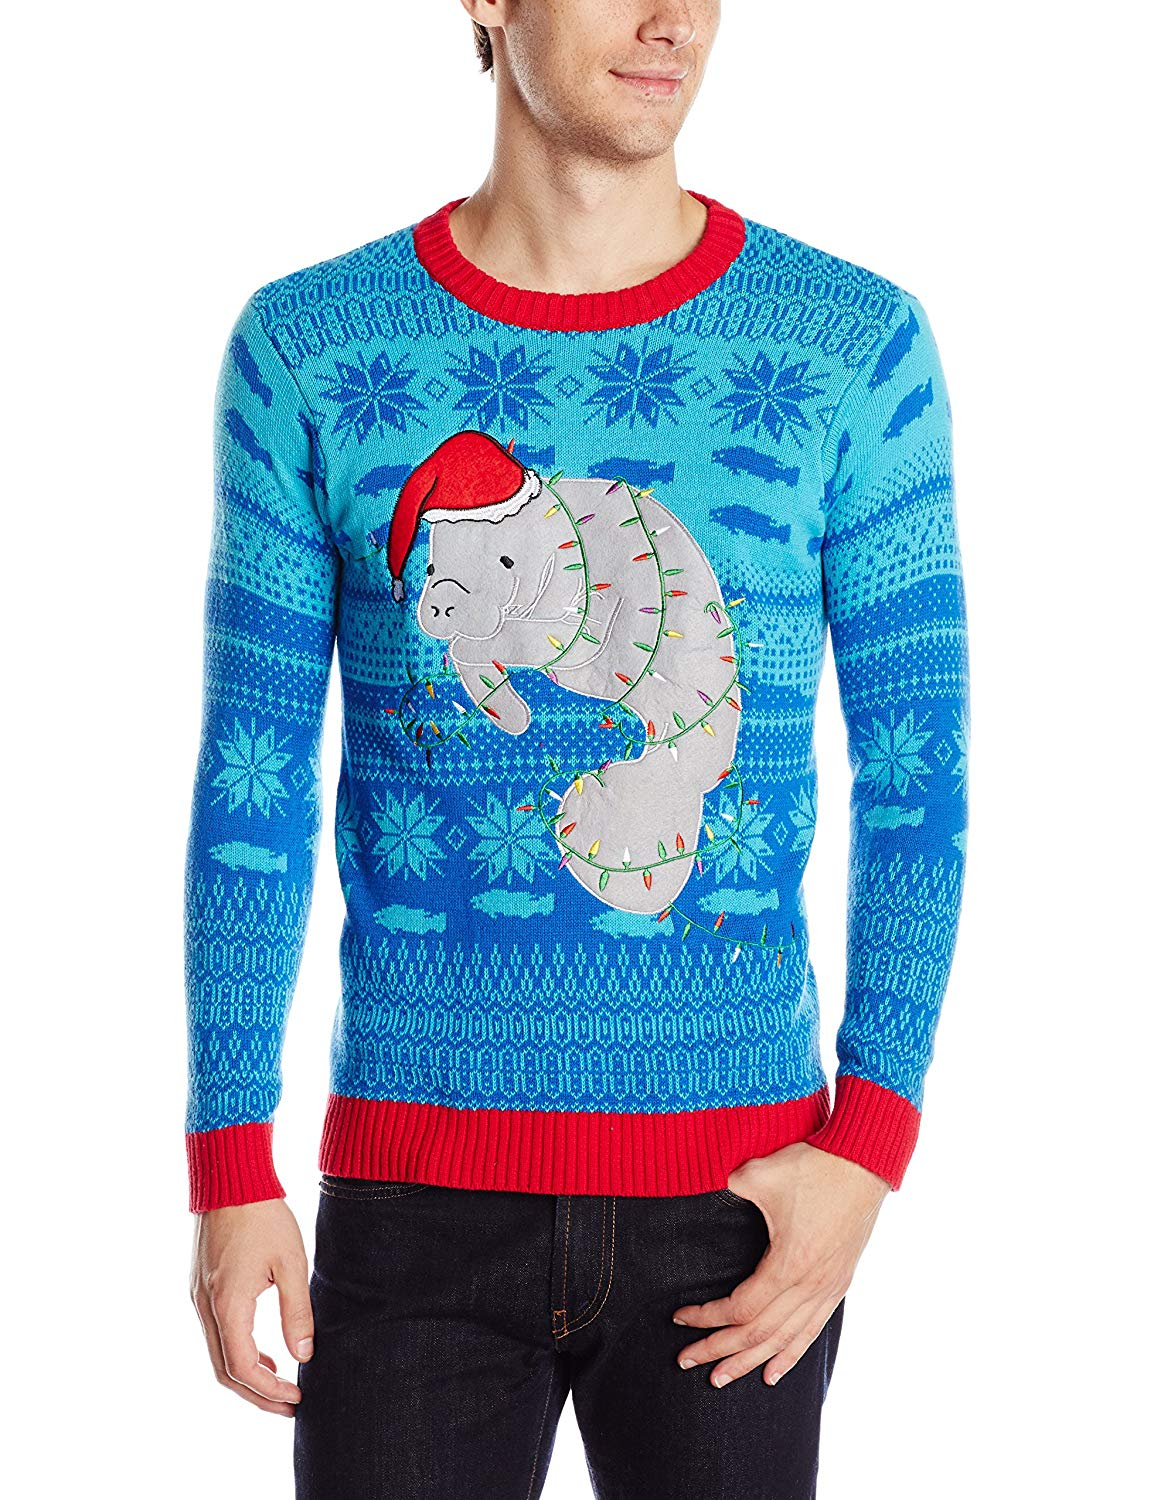 Blizzard Bay Men's Festive Manatee Ugly Christmas Sweater